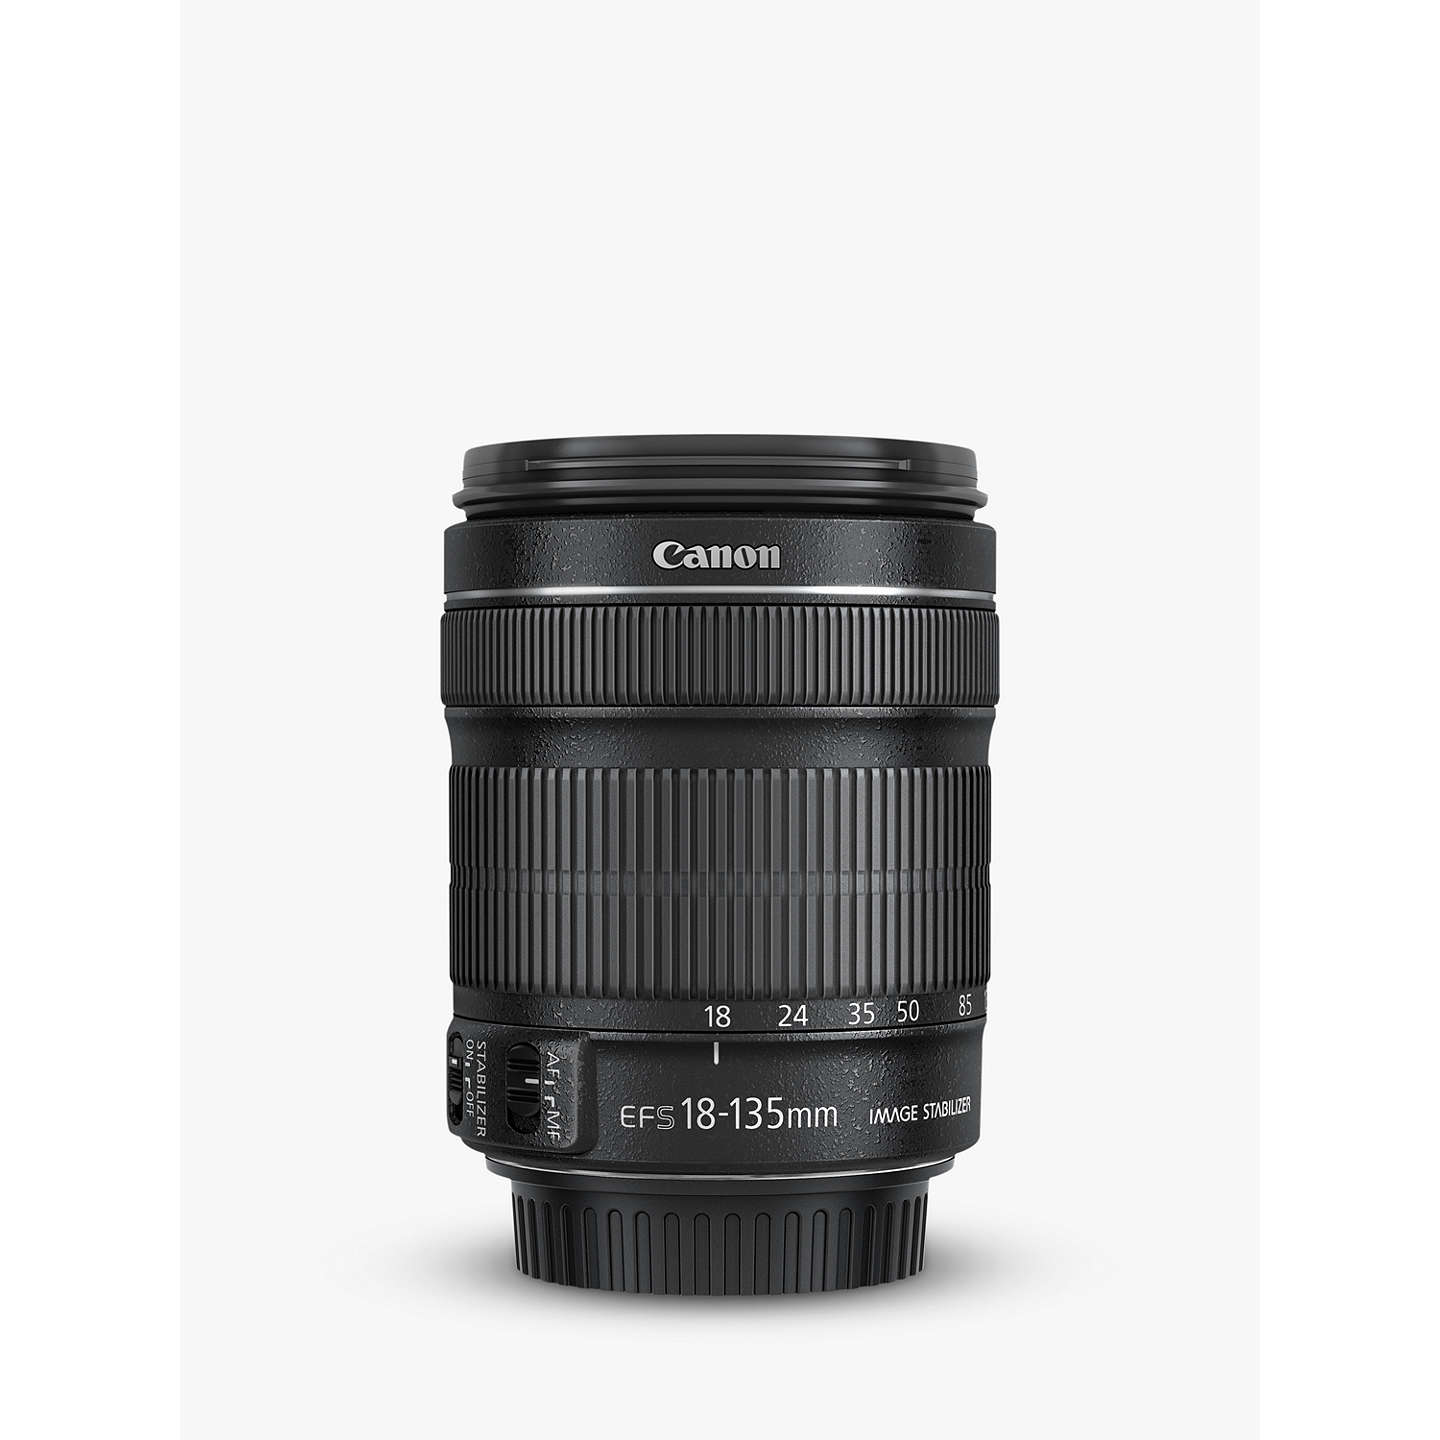 BuyCanon EF-S 18-135mm f/3.5-5.6 IS STM Telephoto Lens Online at johnlewis.com